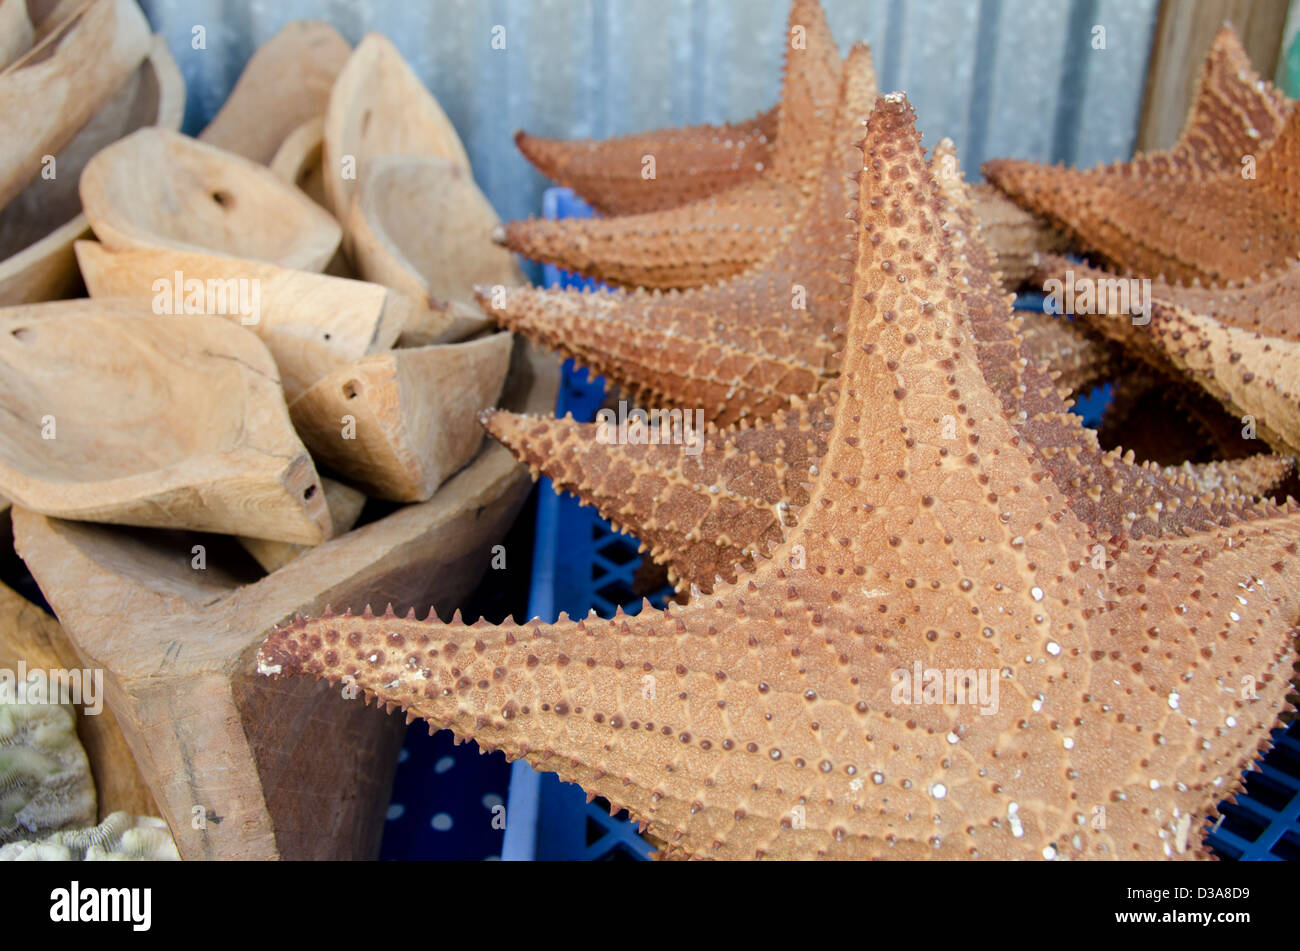 Guatemala, Livingston. Souvenir starfish & hand carved small wooden boats, typical vendor stand along the coast. - Stock Image